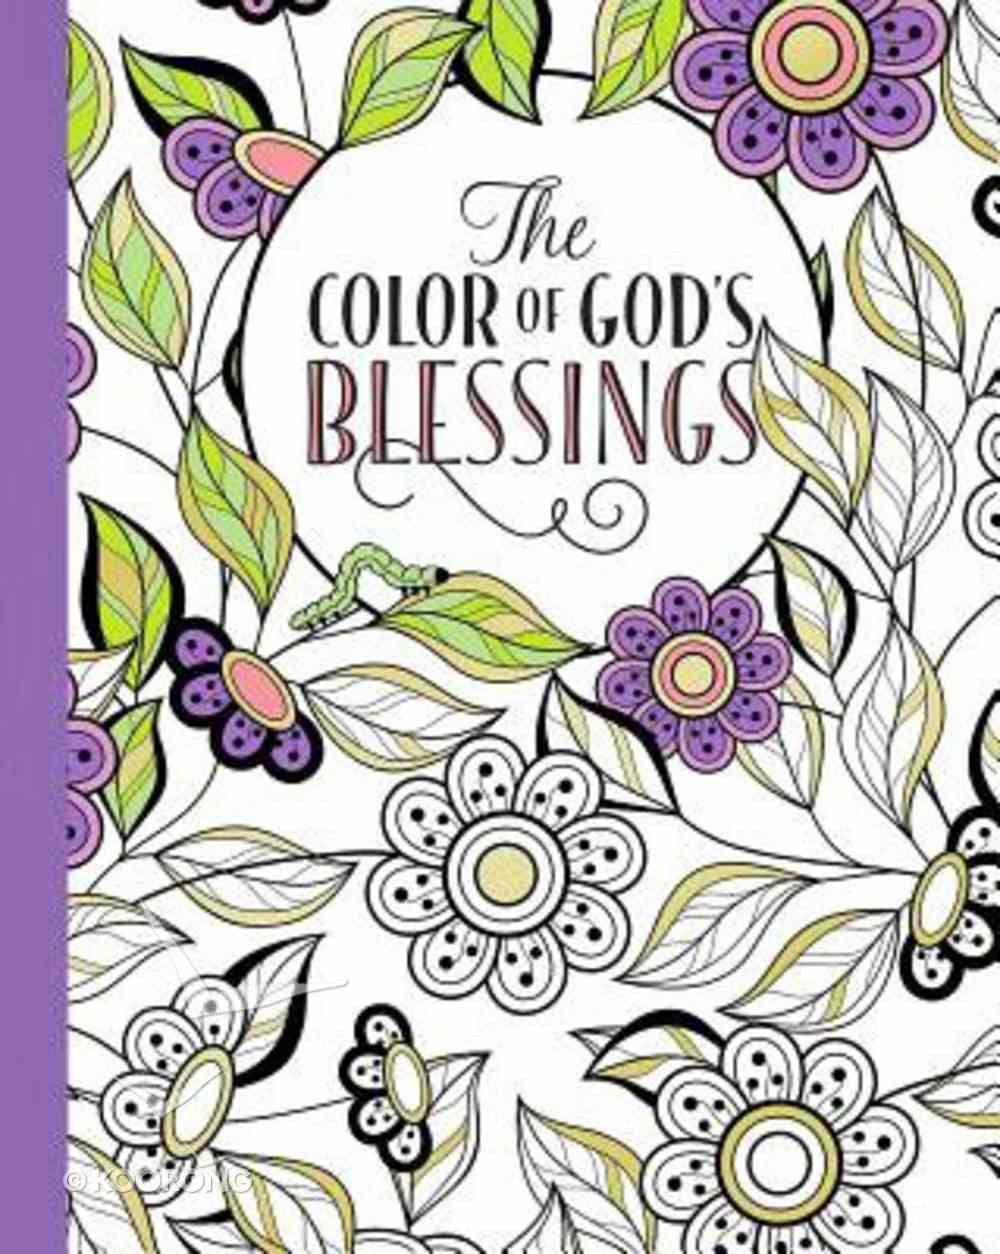 The Color of God's Blessings (Adult Coloring Books Series) Paperback